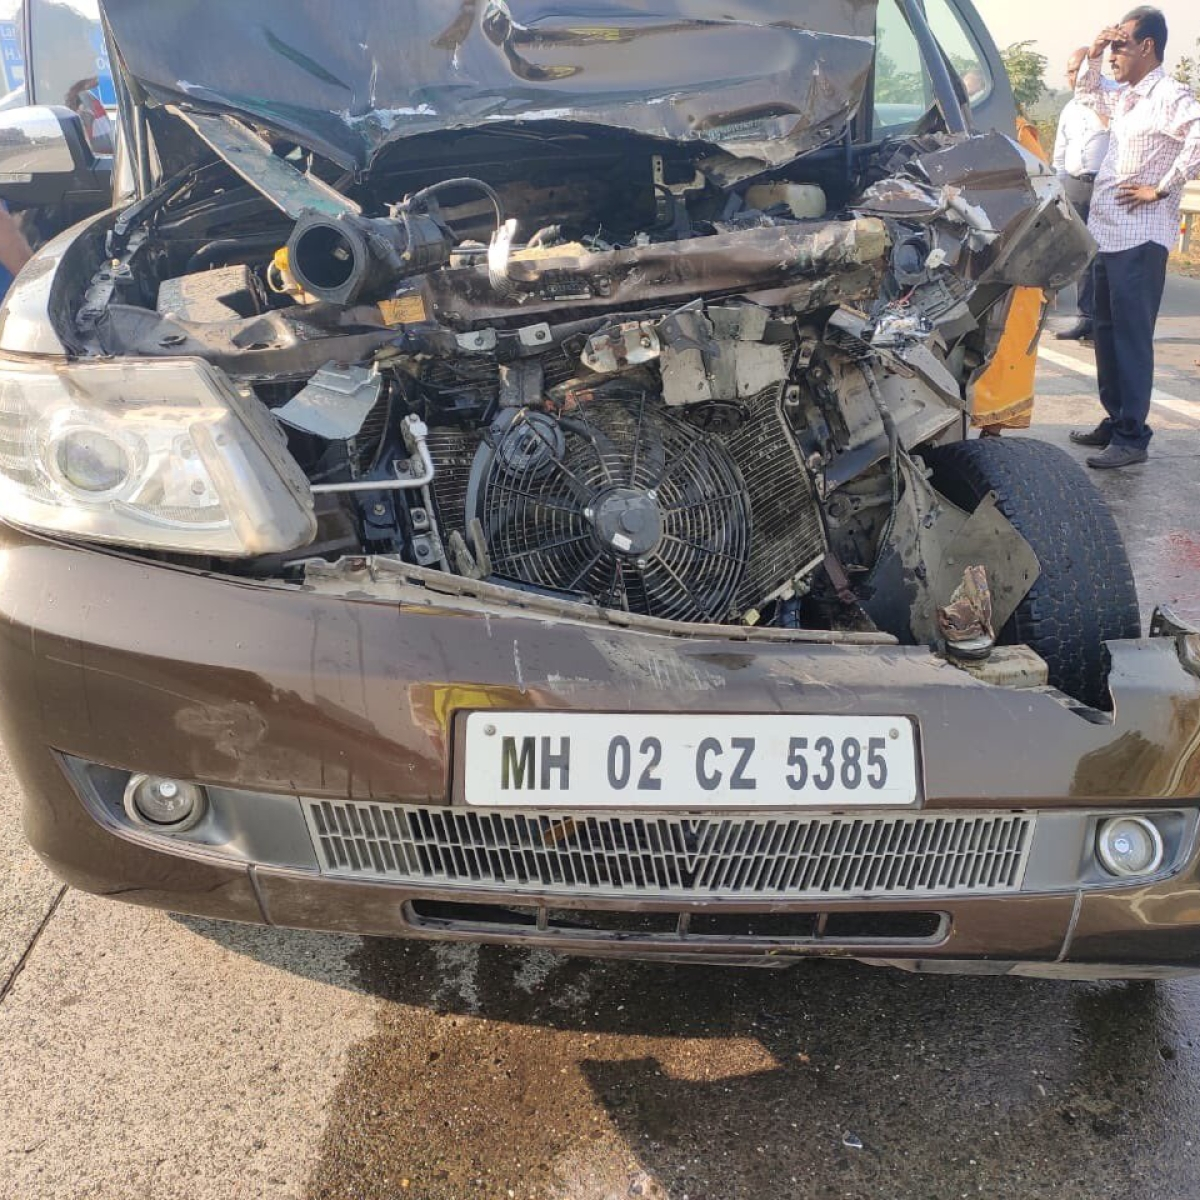 Mumbai: 27% fall in road accident deaths in city over 5 years